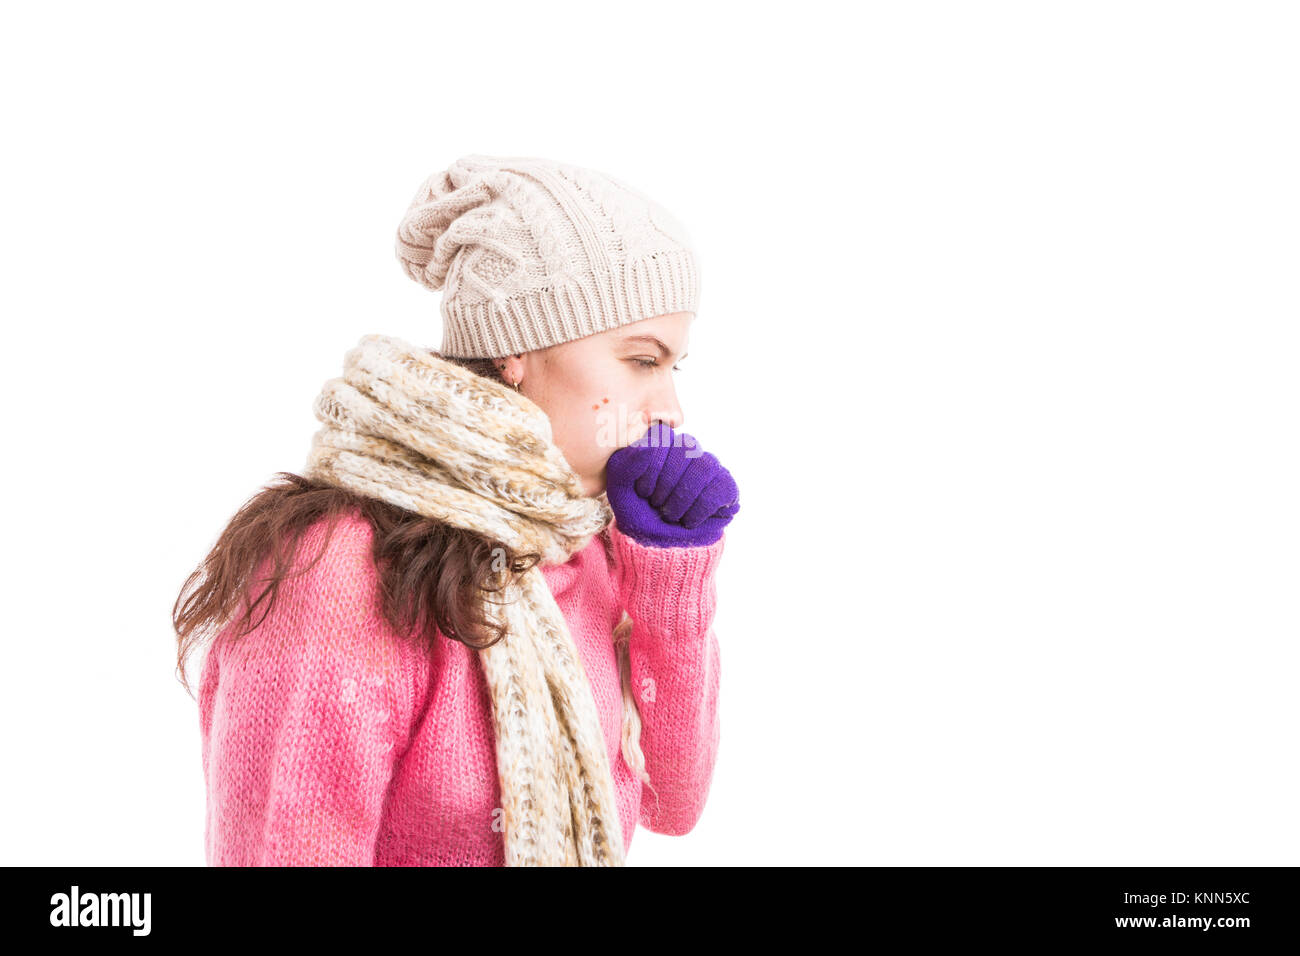 Sick woman with scarf and hat couching as influenza virus concept isolated on white background with copy and text - Stock Image